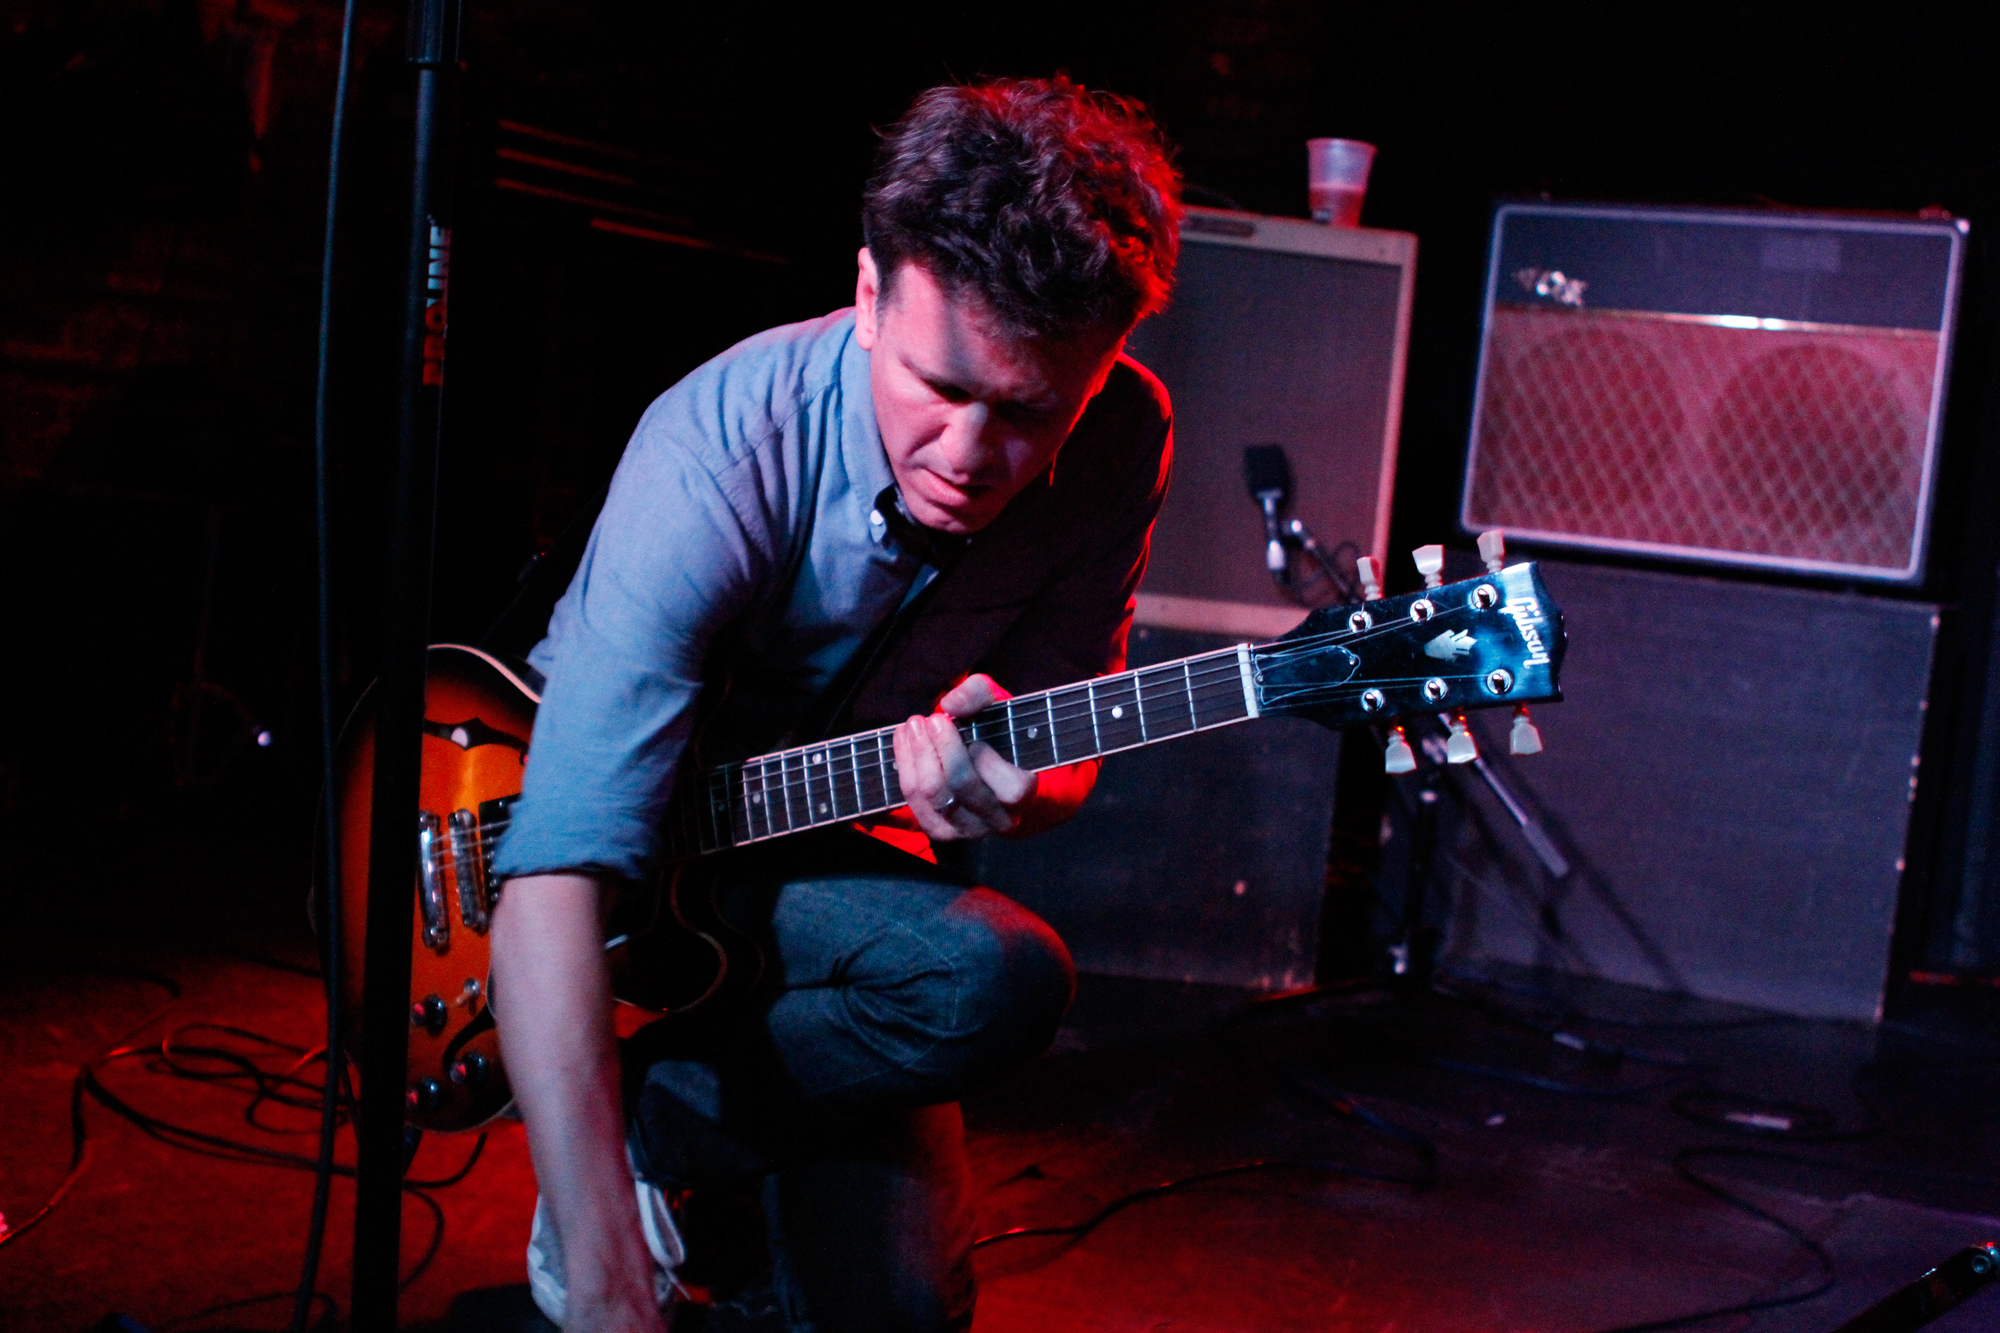 Mac McCaughan performs with Telekinesis at Merge Records' showcase at Mercury Lounge during the CMJ Music Marathon in New York, NY on Oct. 18, 2012.